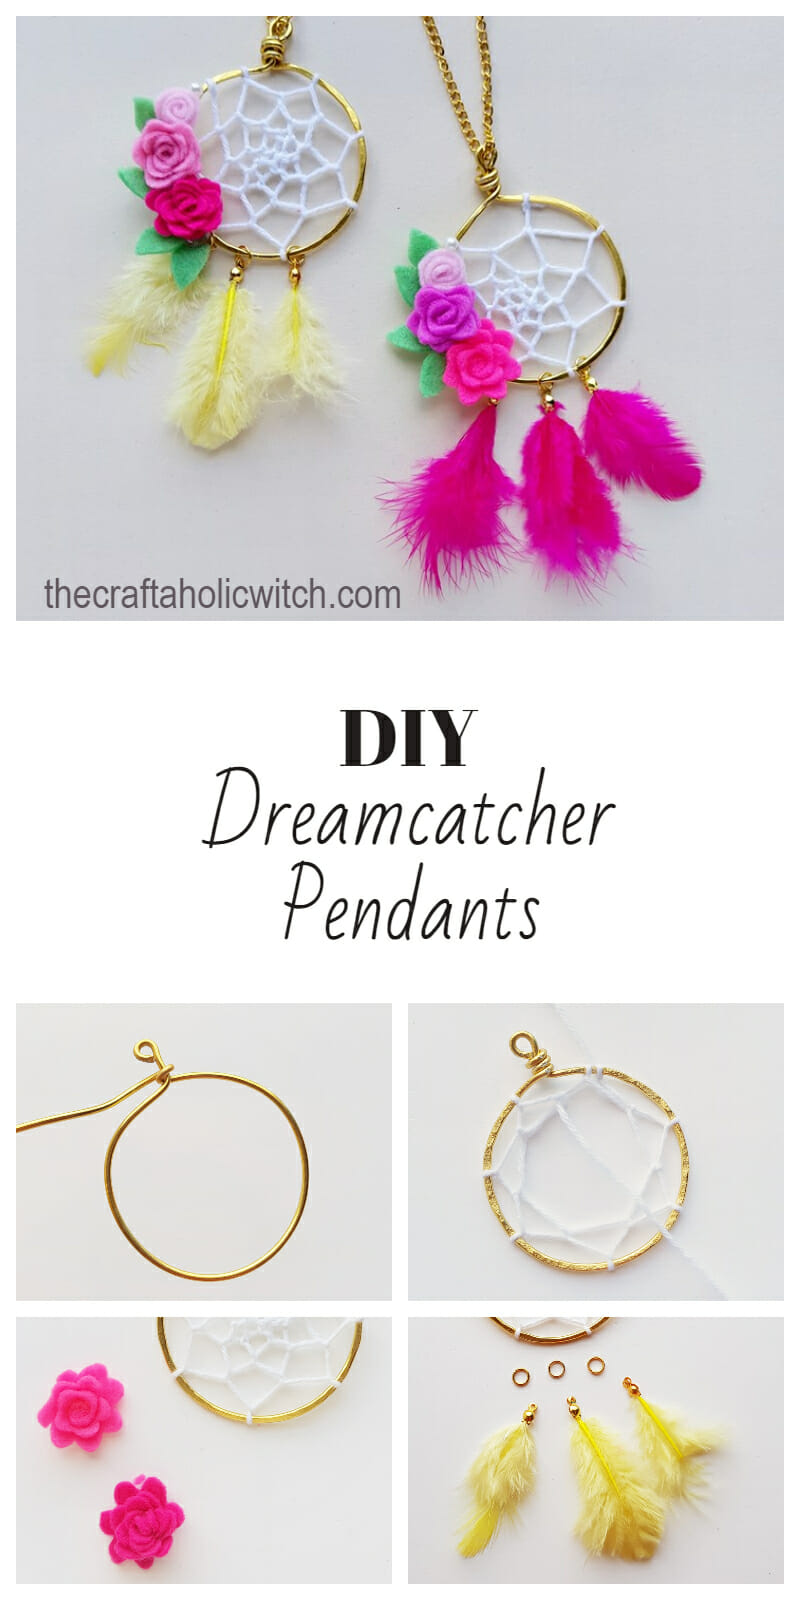 DIY dreamcatcher pendant